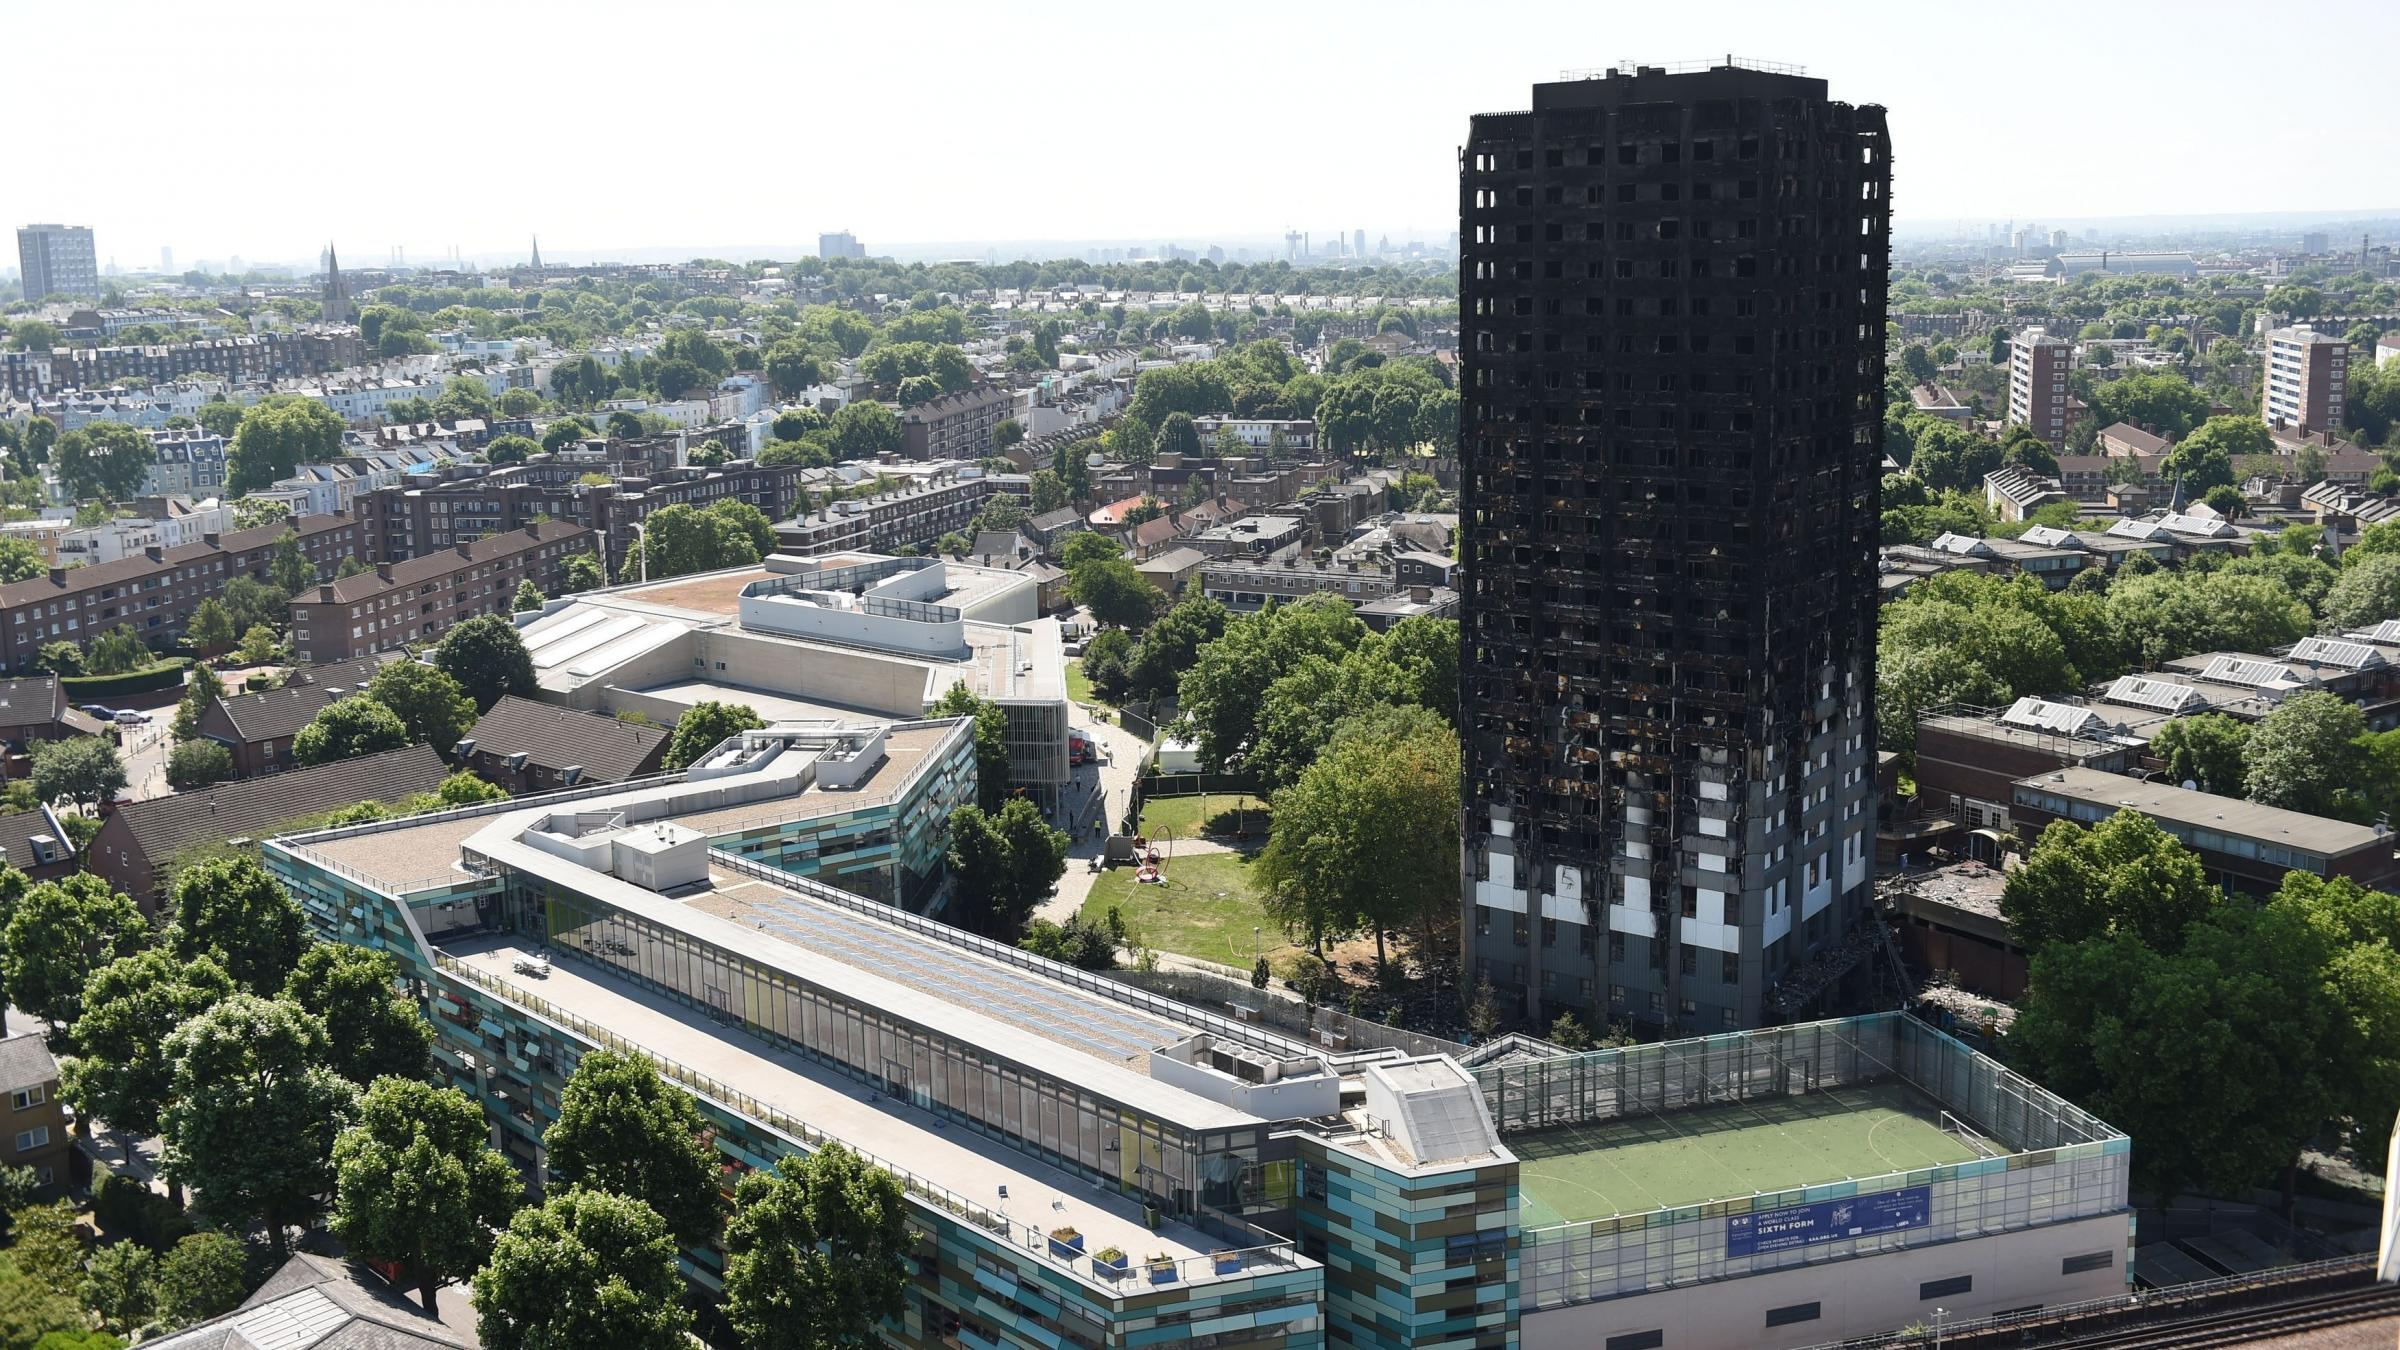 Three more Grenfell Tower victims named, as death toll rises to 79